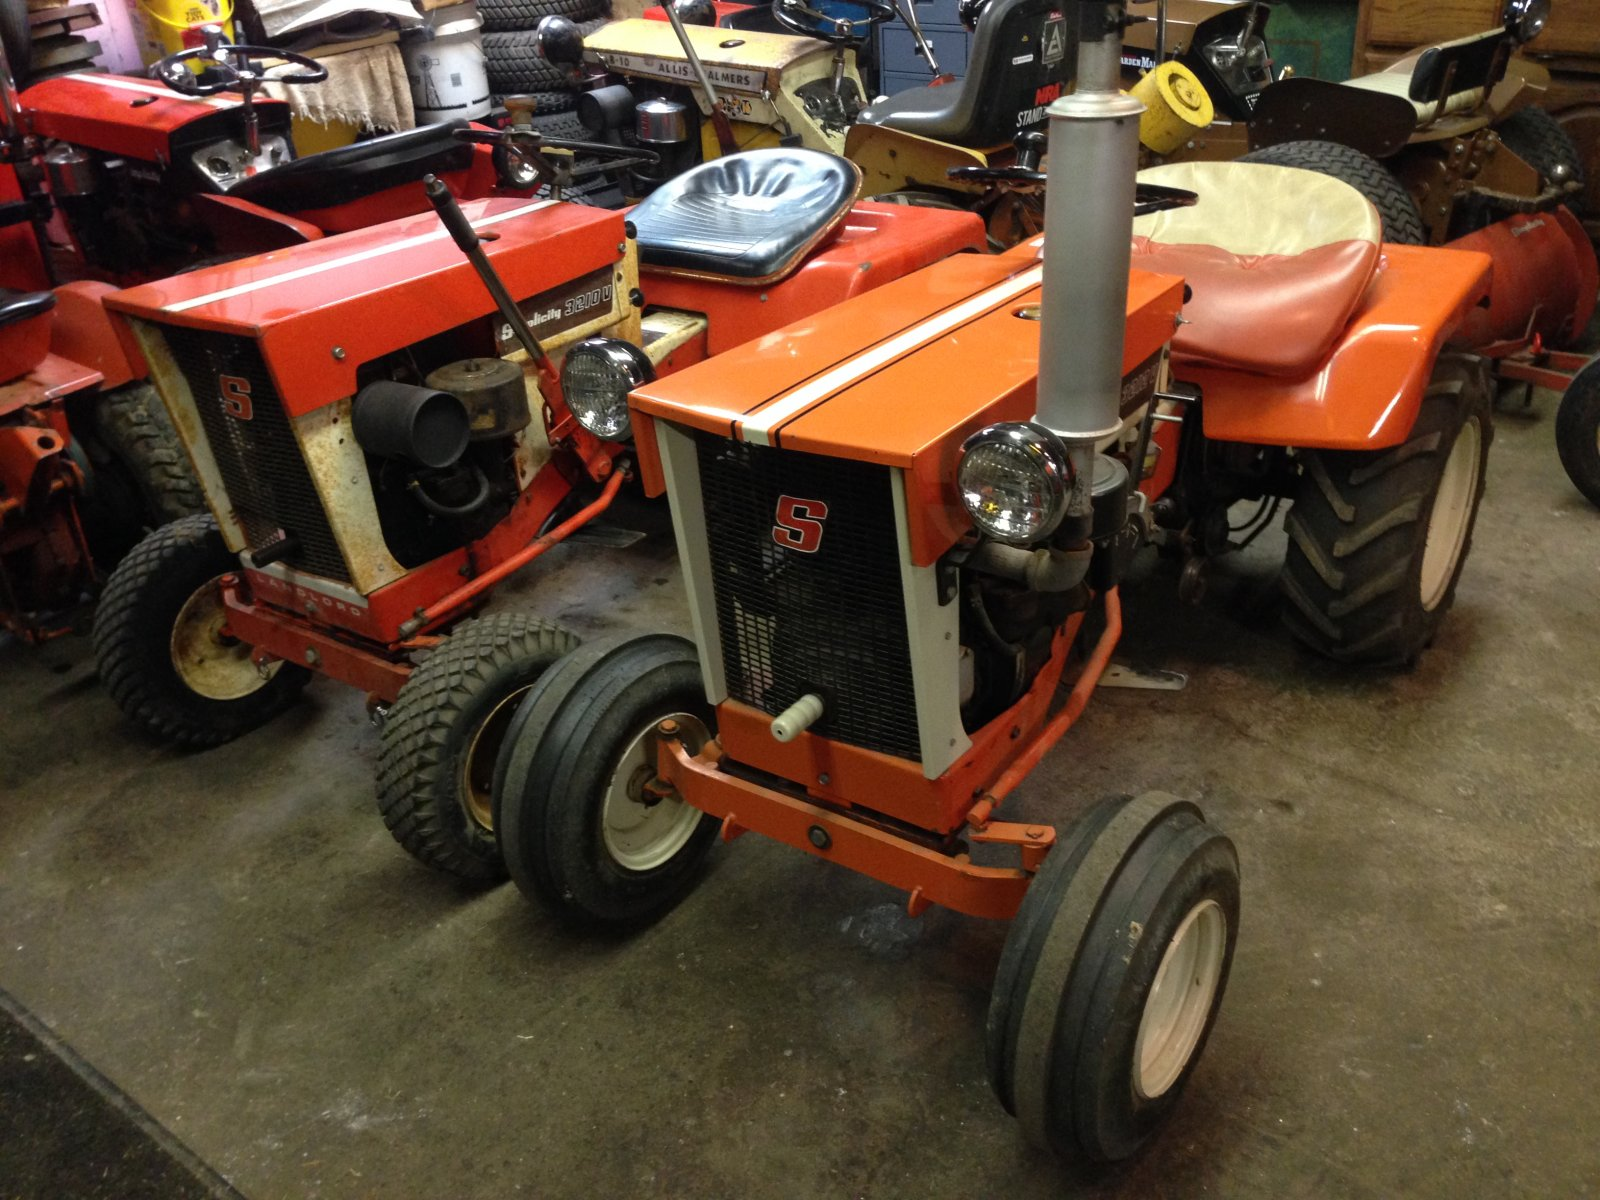 Tractor of the Month - December 2016 - Show & Tell - Simple trACtors